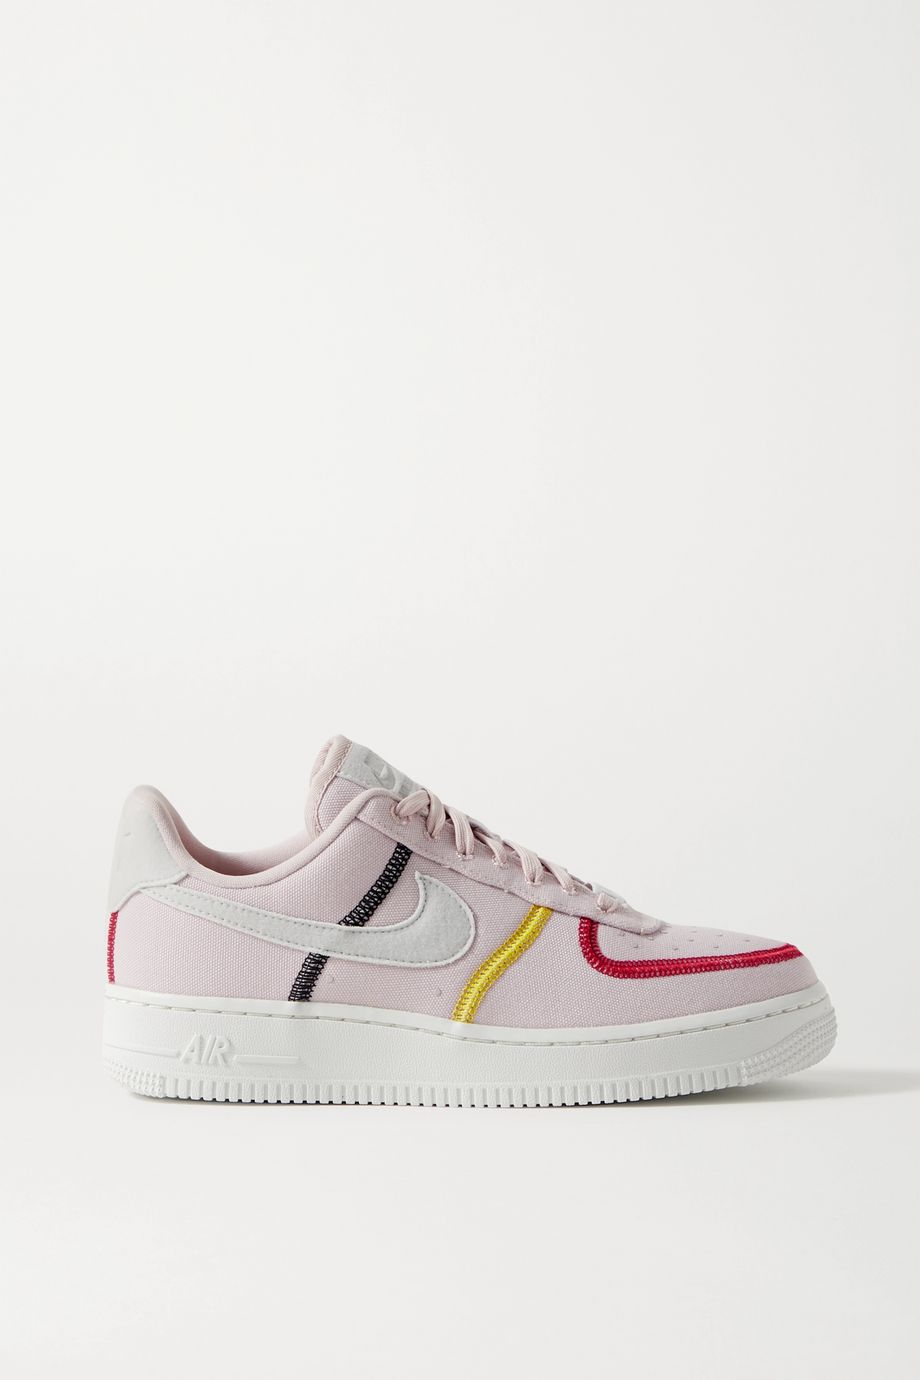 Nike Air Force 1 '07 suede-trimmed canvas sneakers